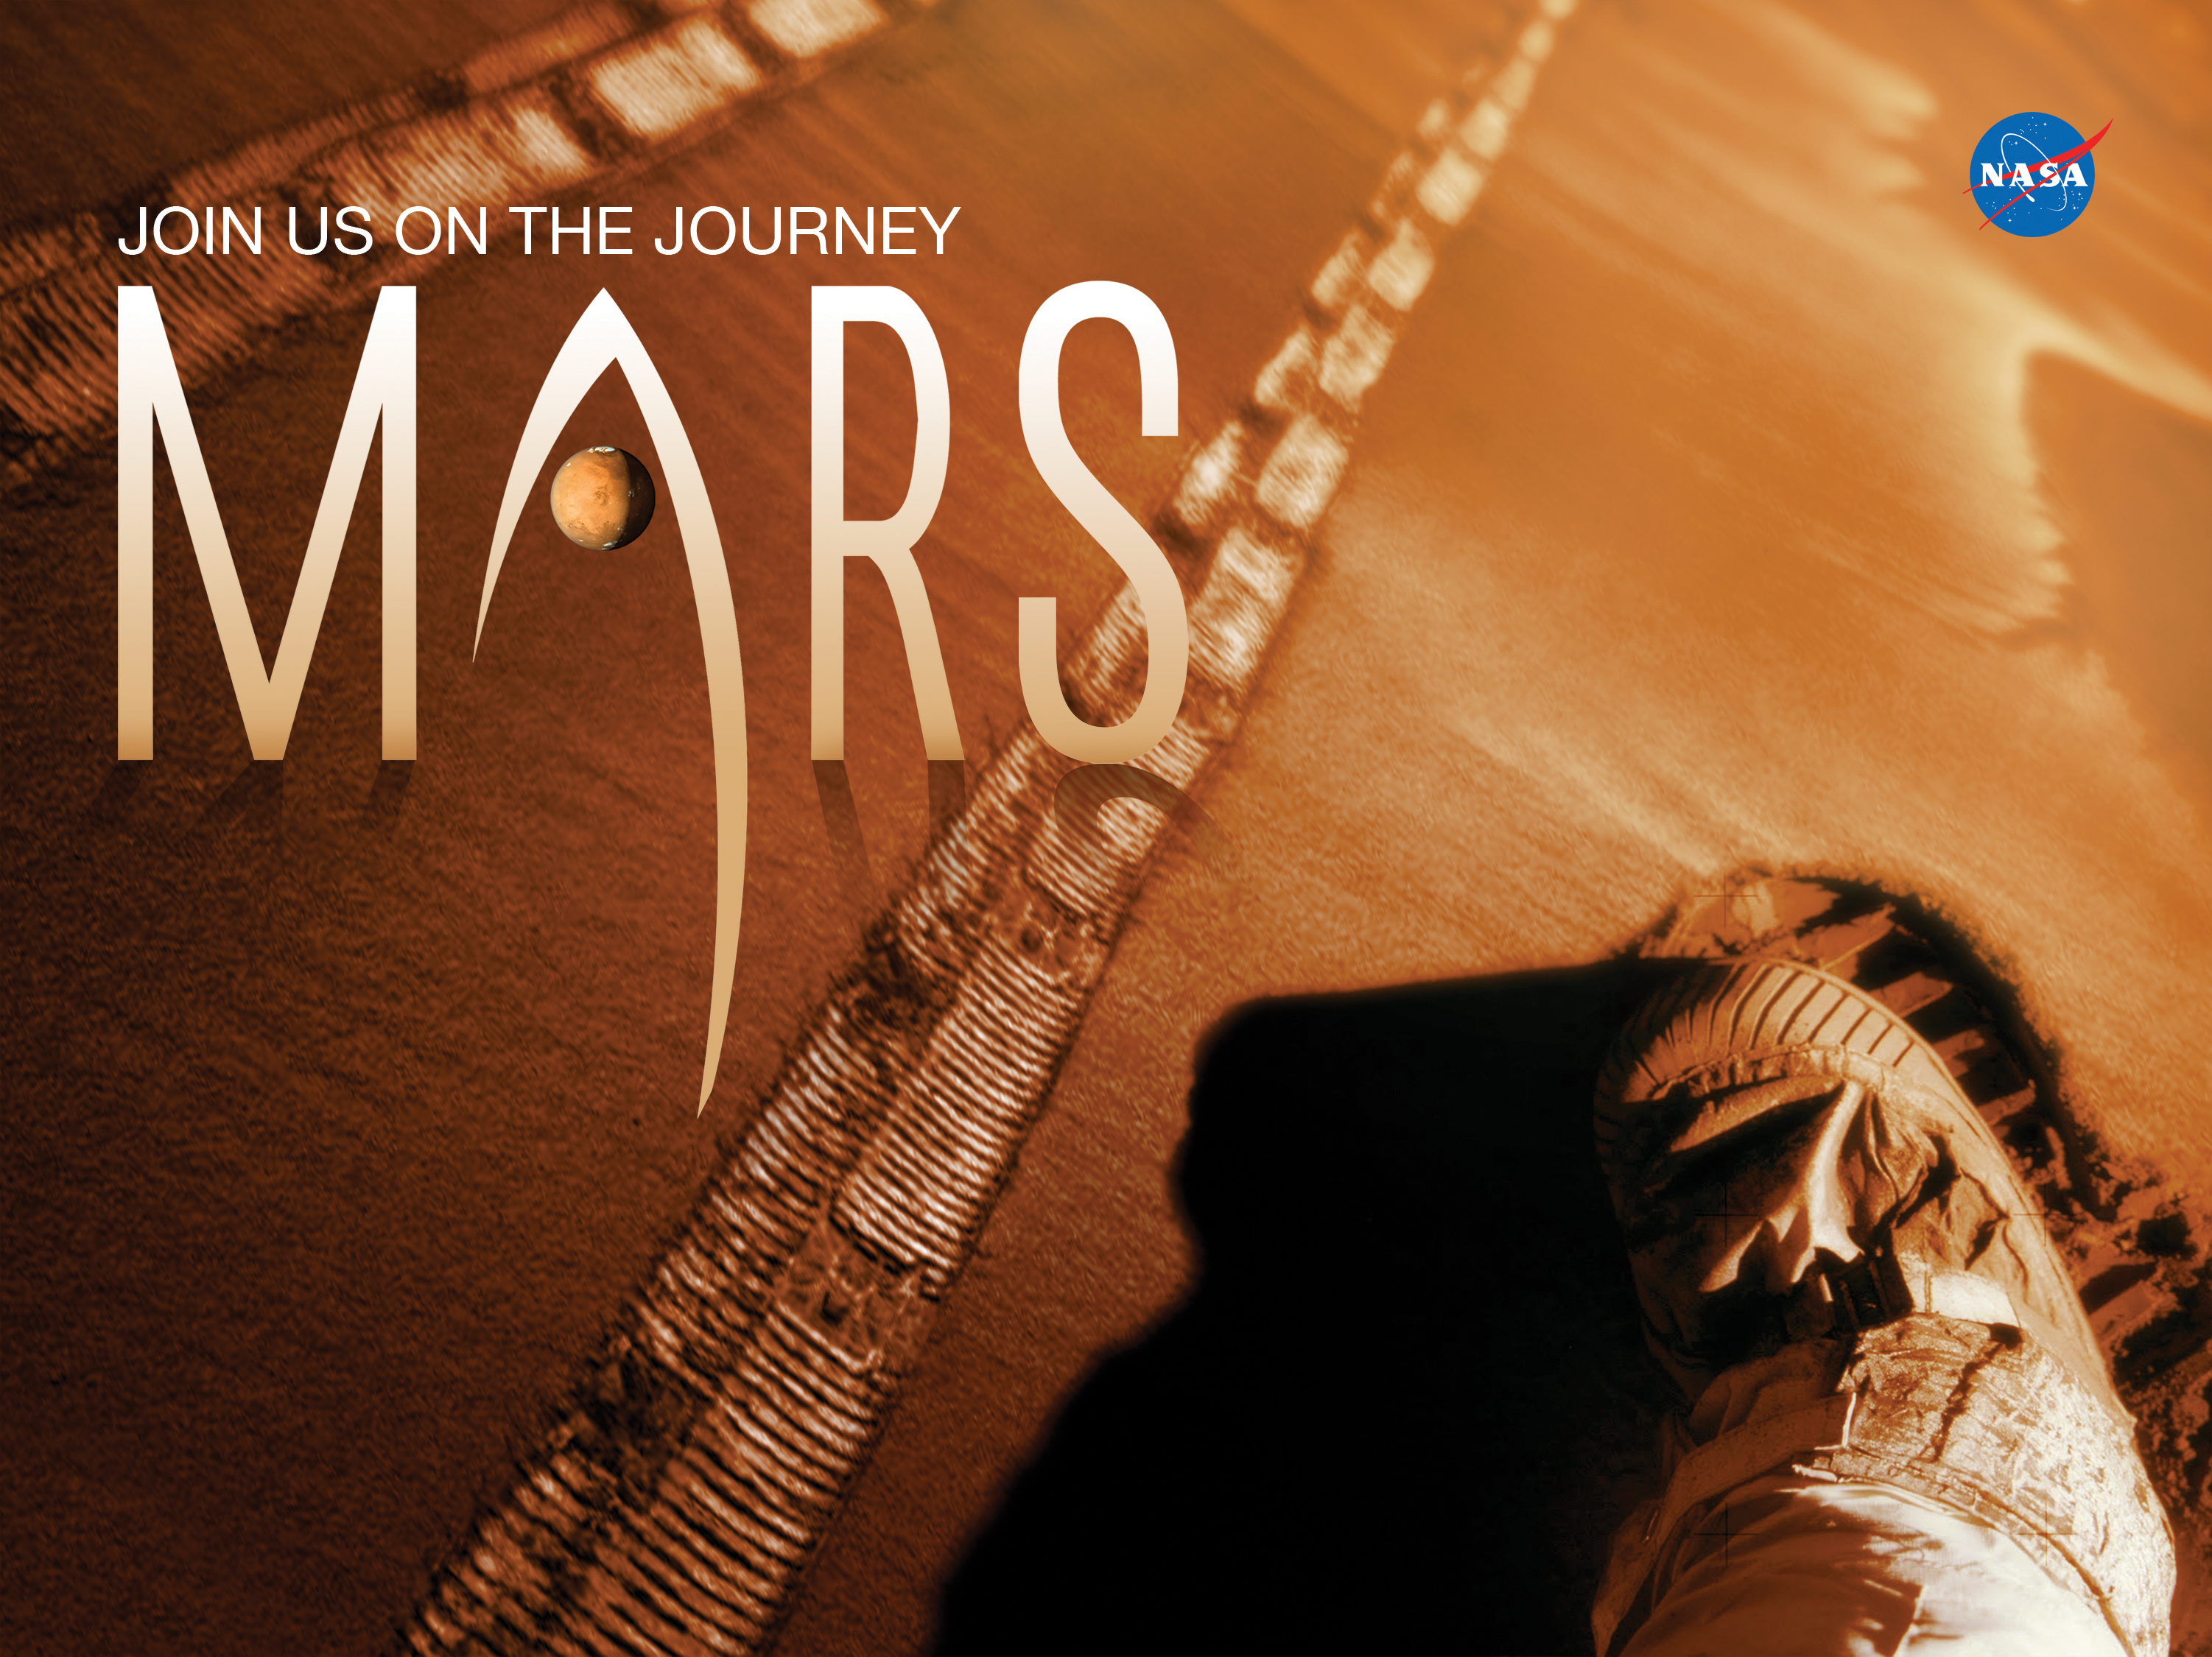 NASA's Journey to Mars #NextGiantLeap